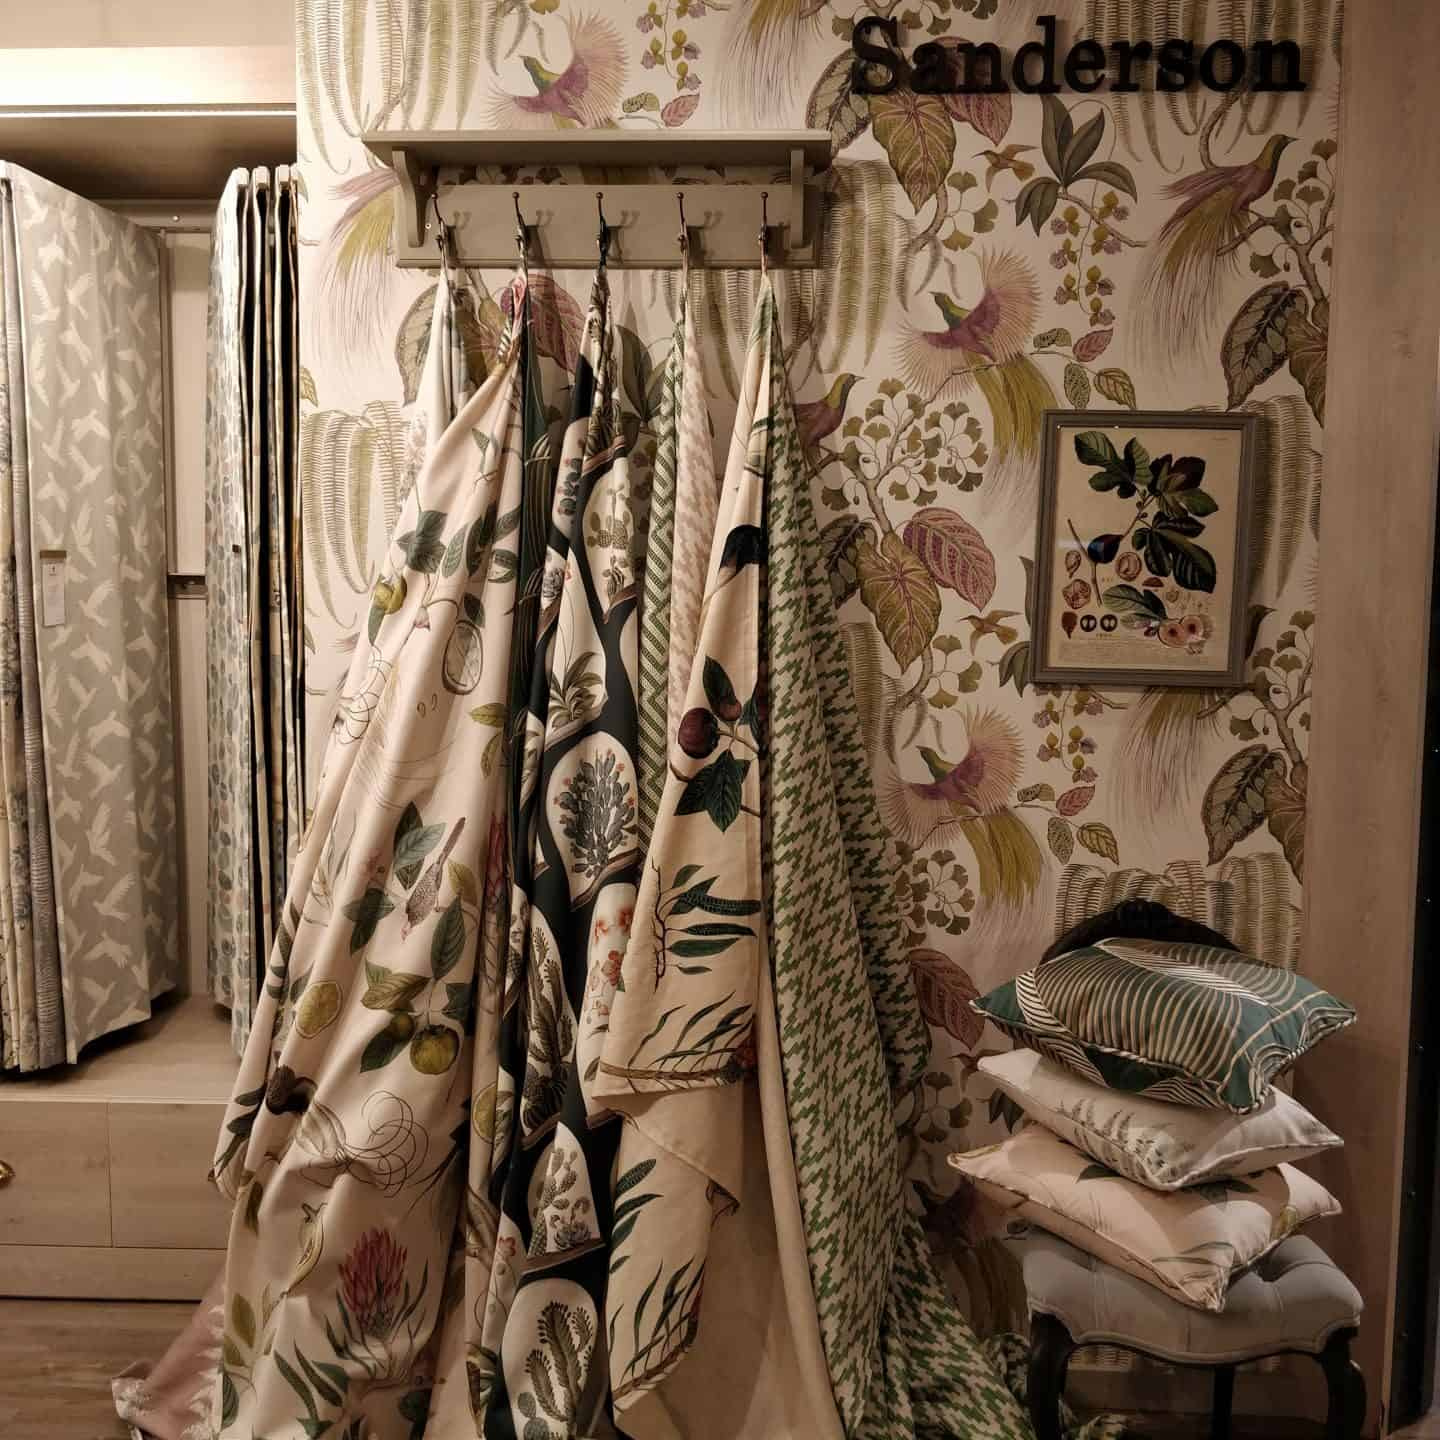 A display of fabrics and cushions and wallpaper by Sanderson